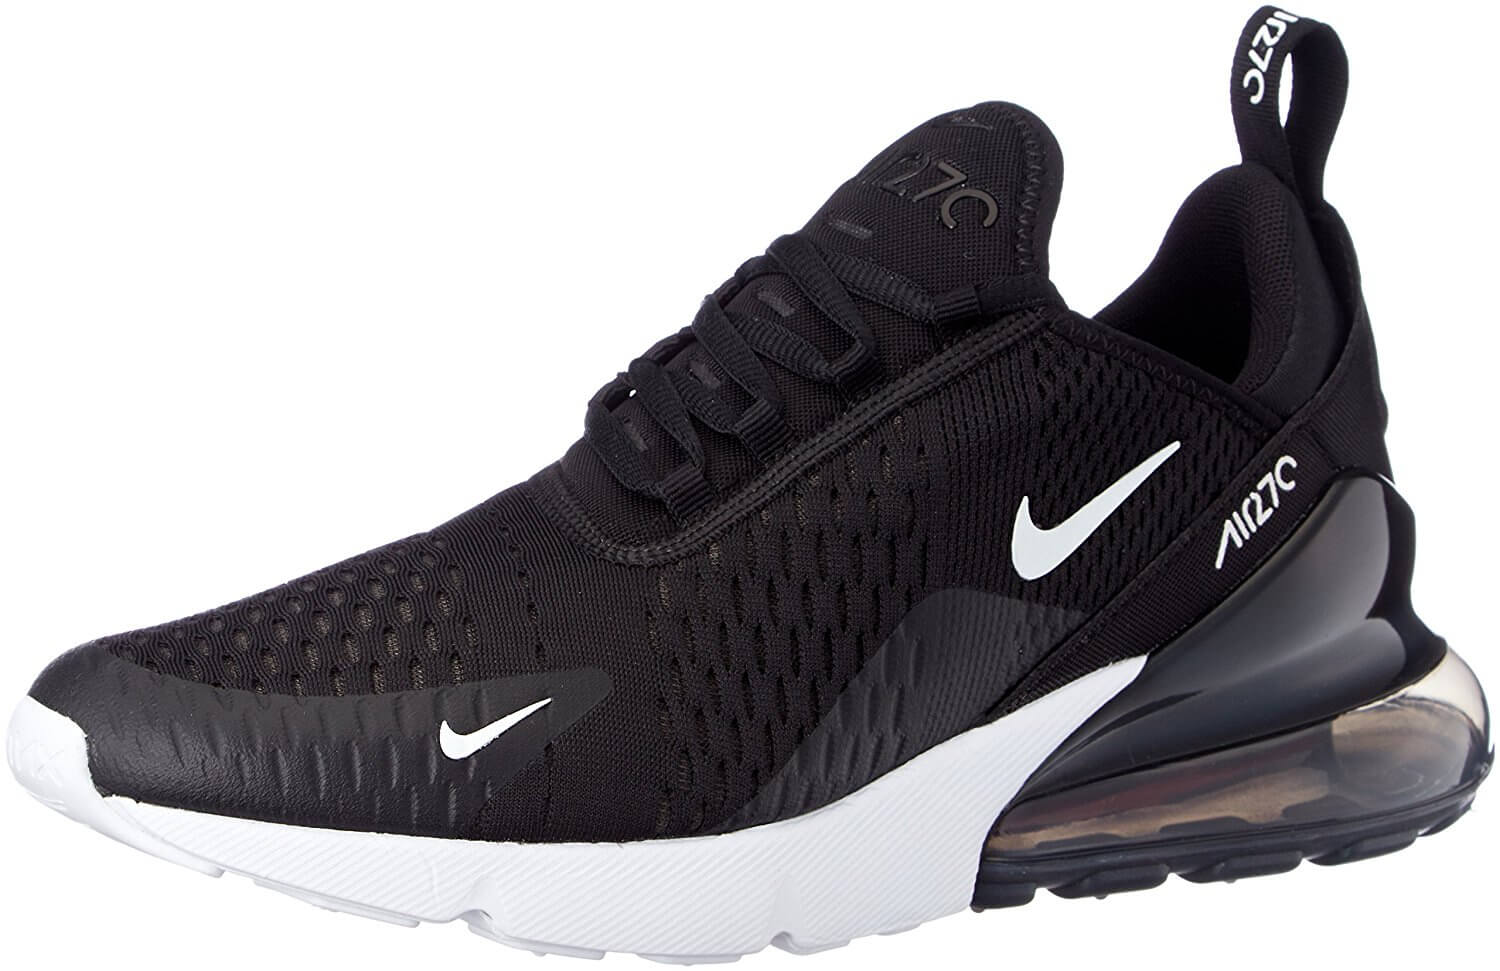 size 40 21131 d7407 Nike Air Max 270 Reviewed - To Buy or Not in July 2019